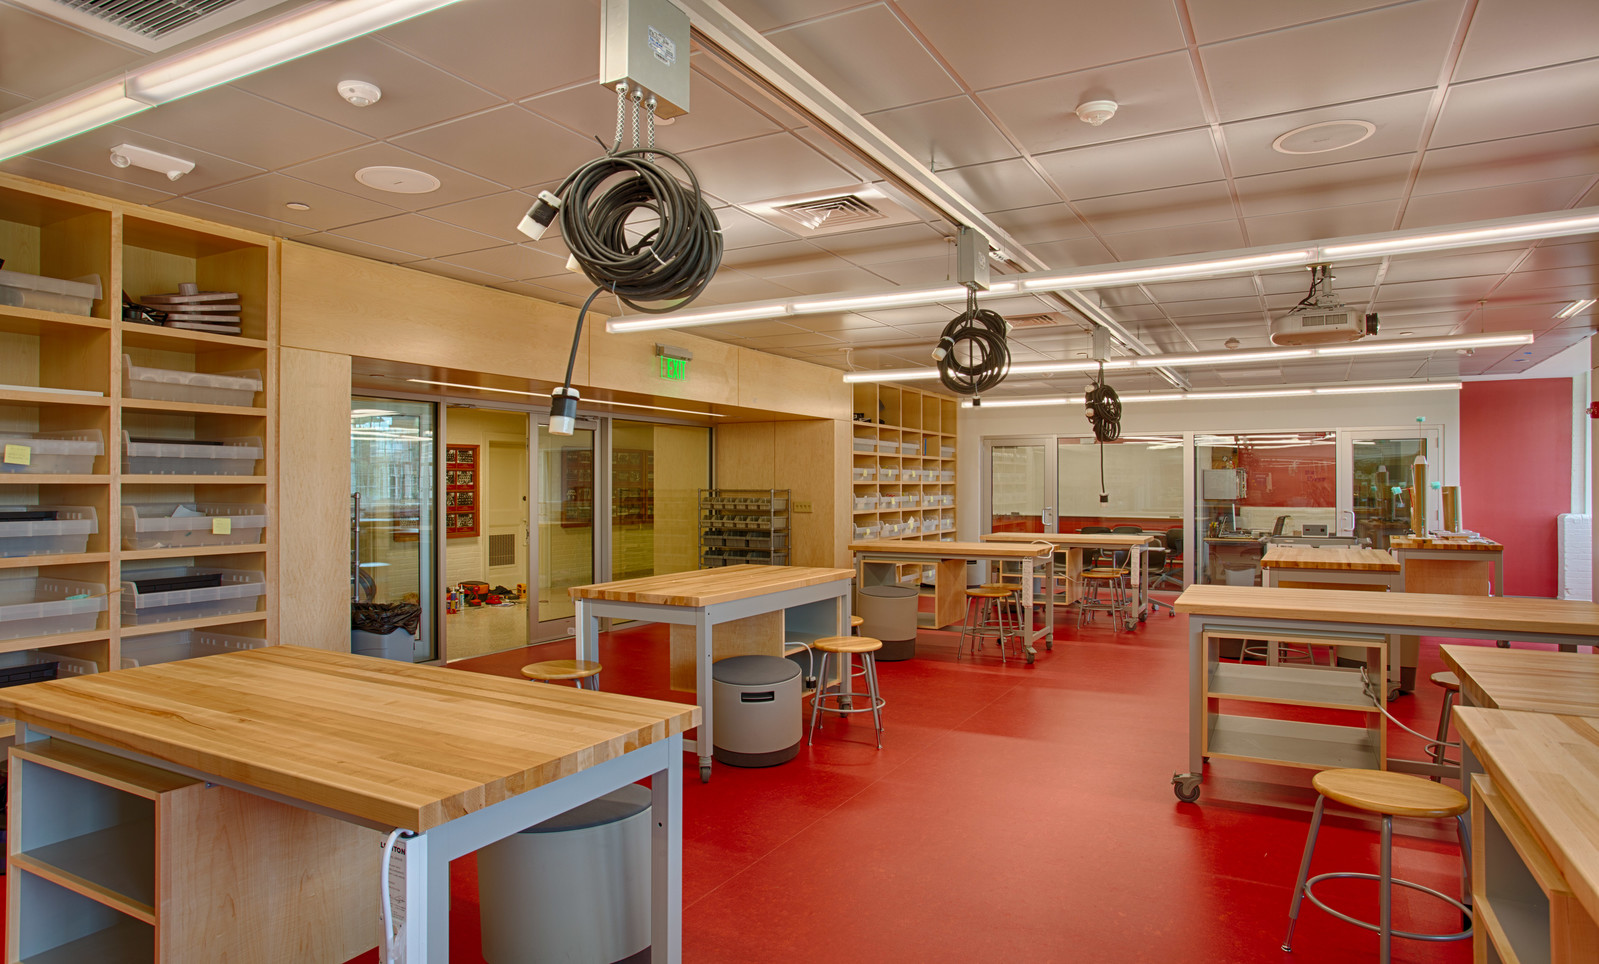 We furnished the built-ins for this high school lab space